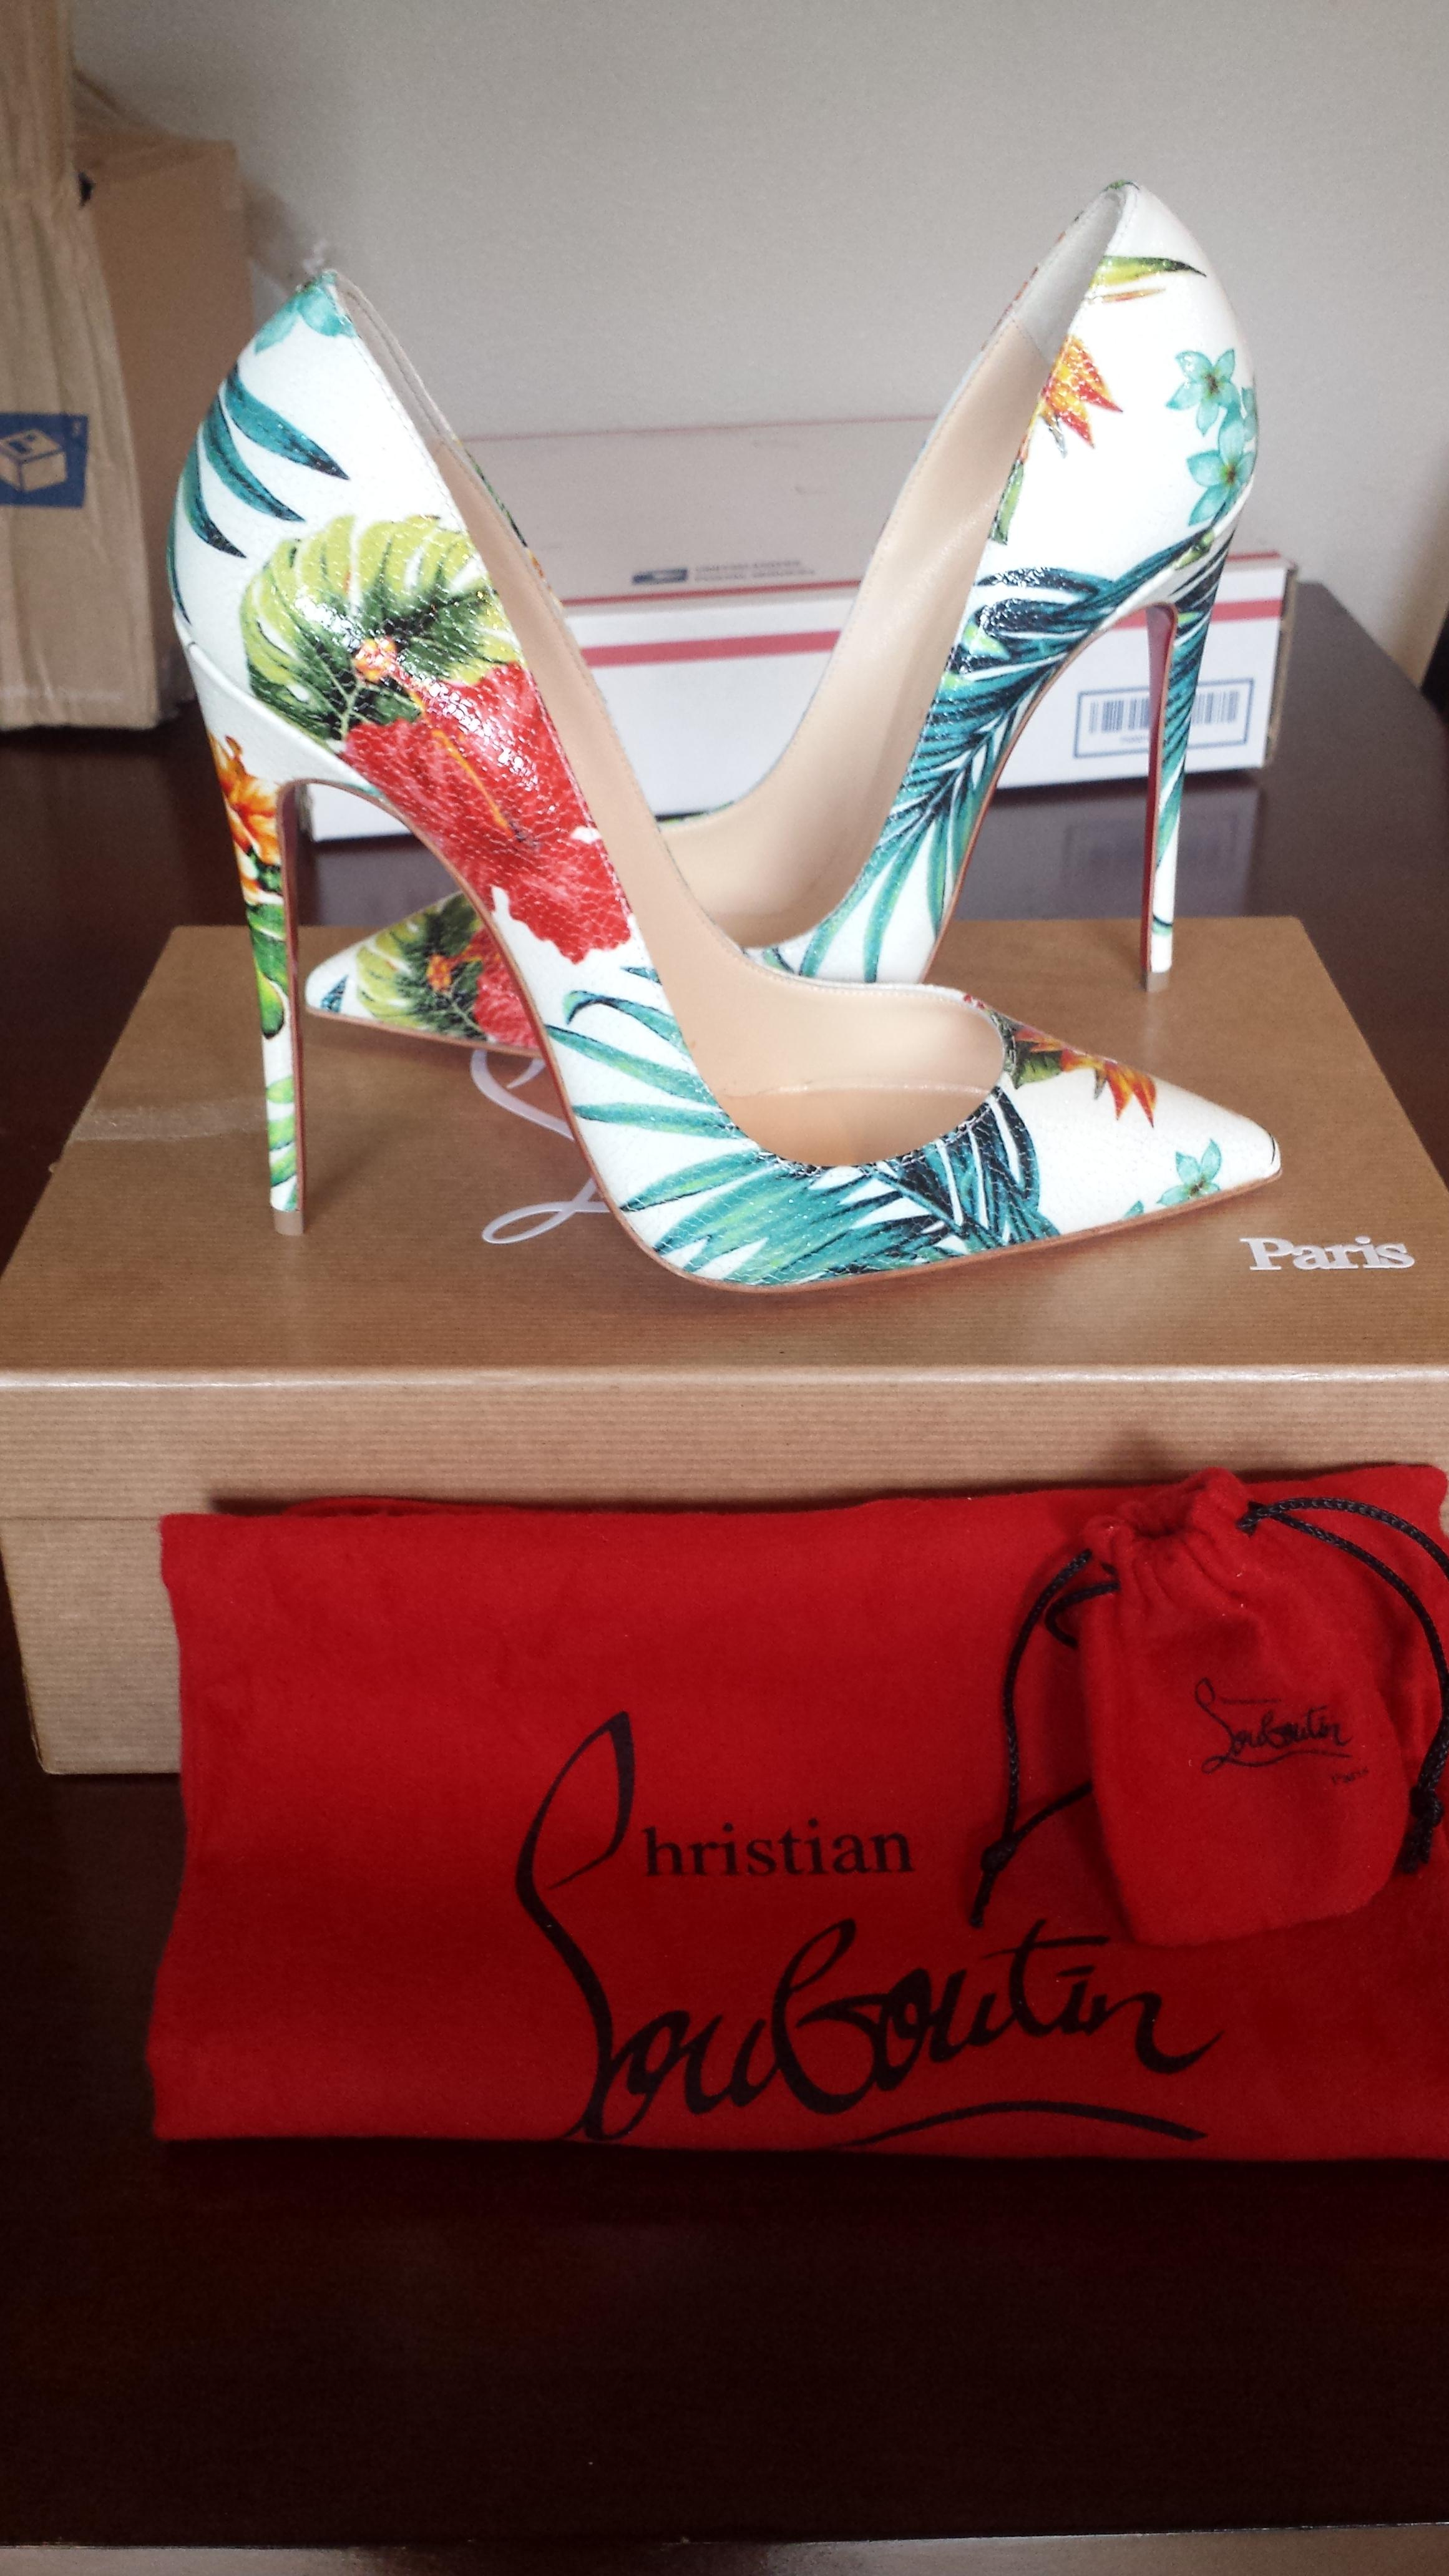 00c165bfe1 ... Gentleman/Lady:Christian Louboutin So Kate Pumps Pumps Pumps Size US 8  :In ...